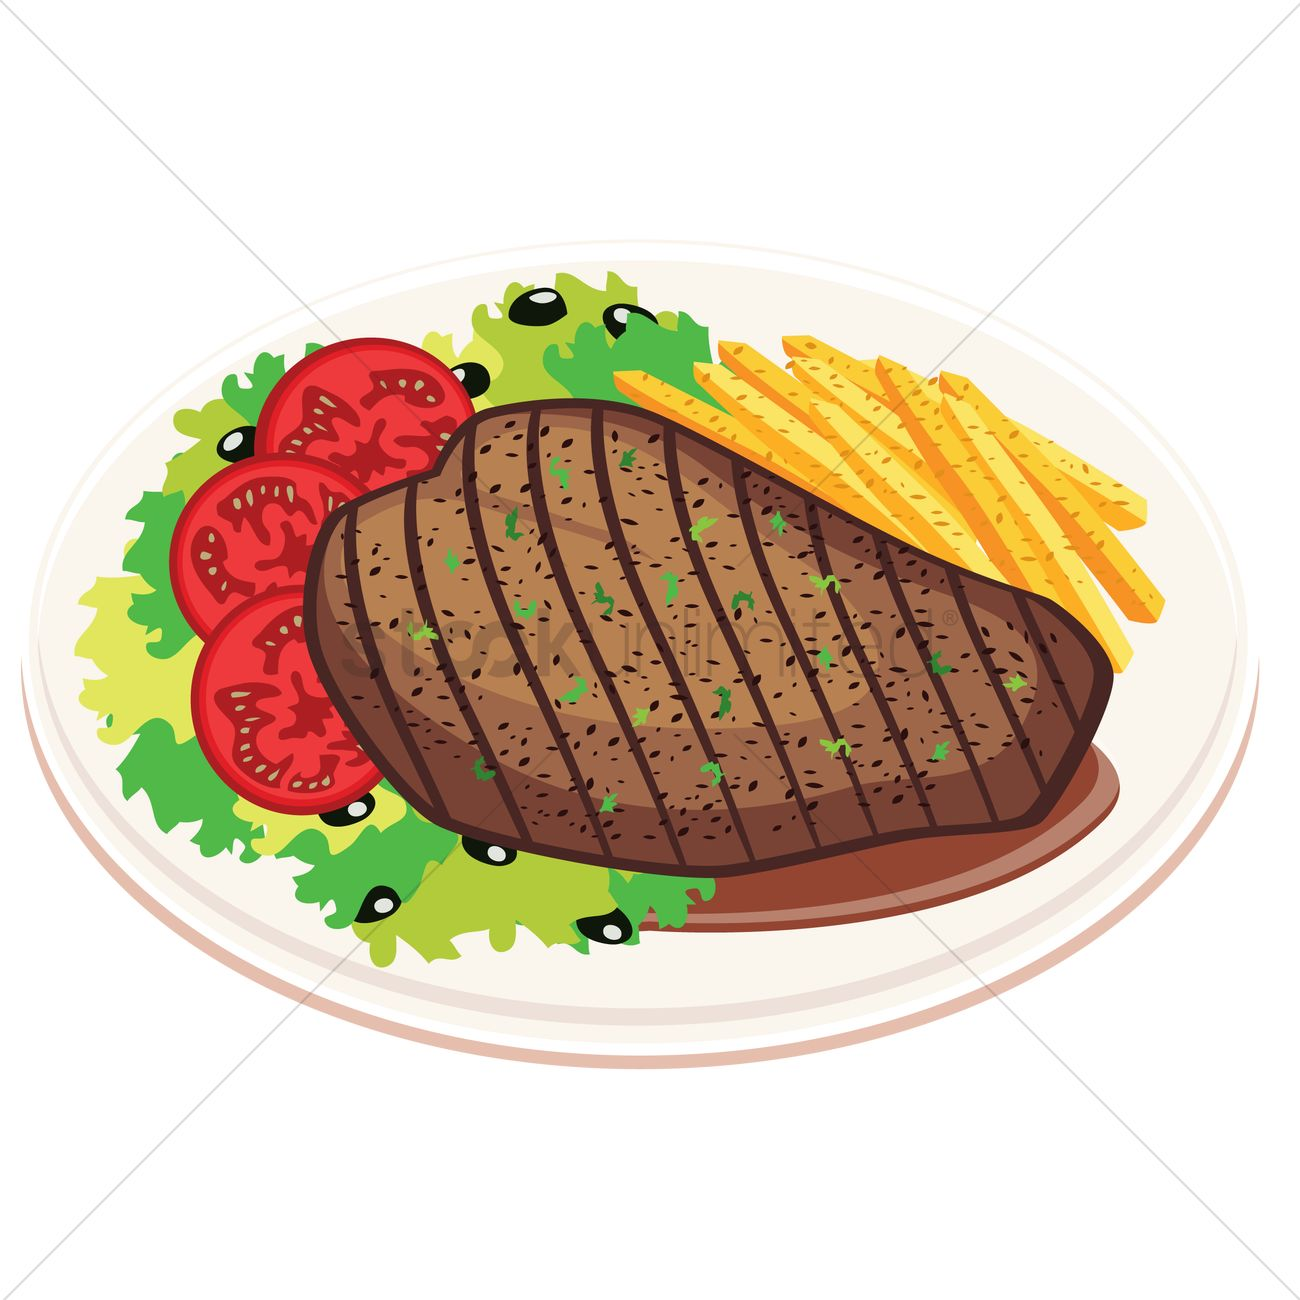 Grilled steak with fries and salad Vector Image.